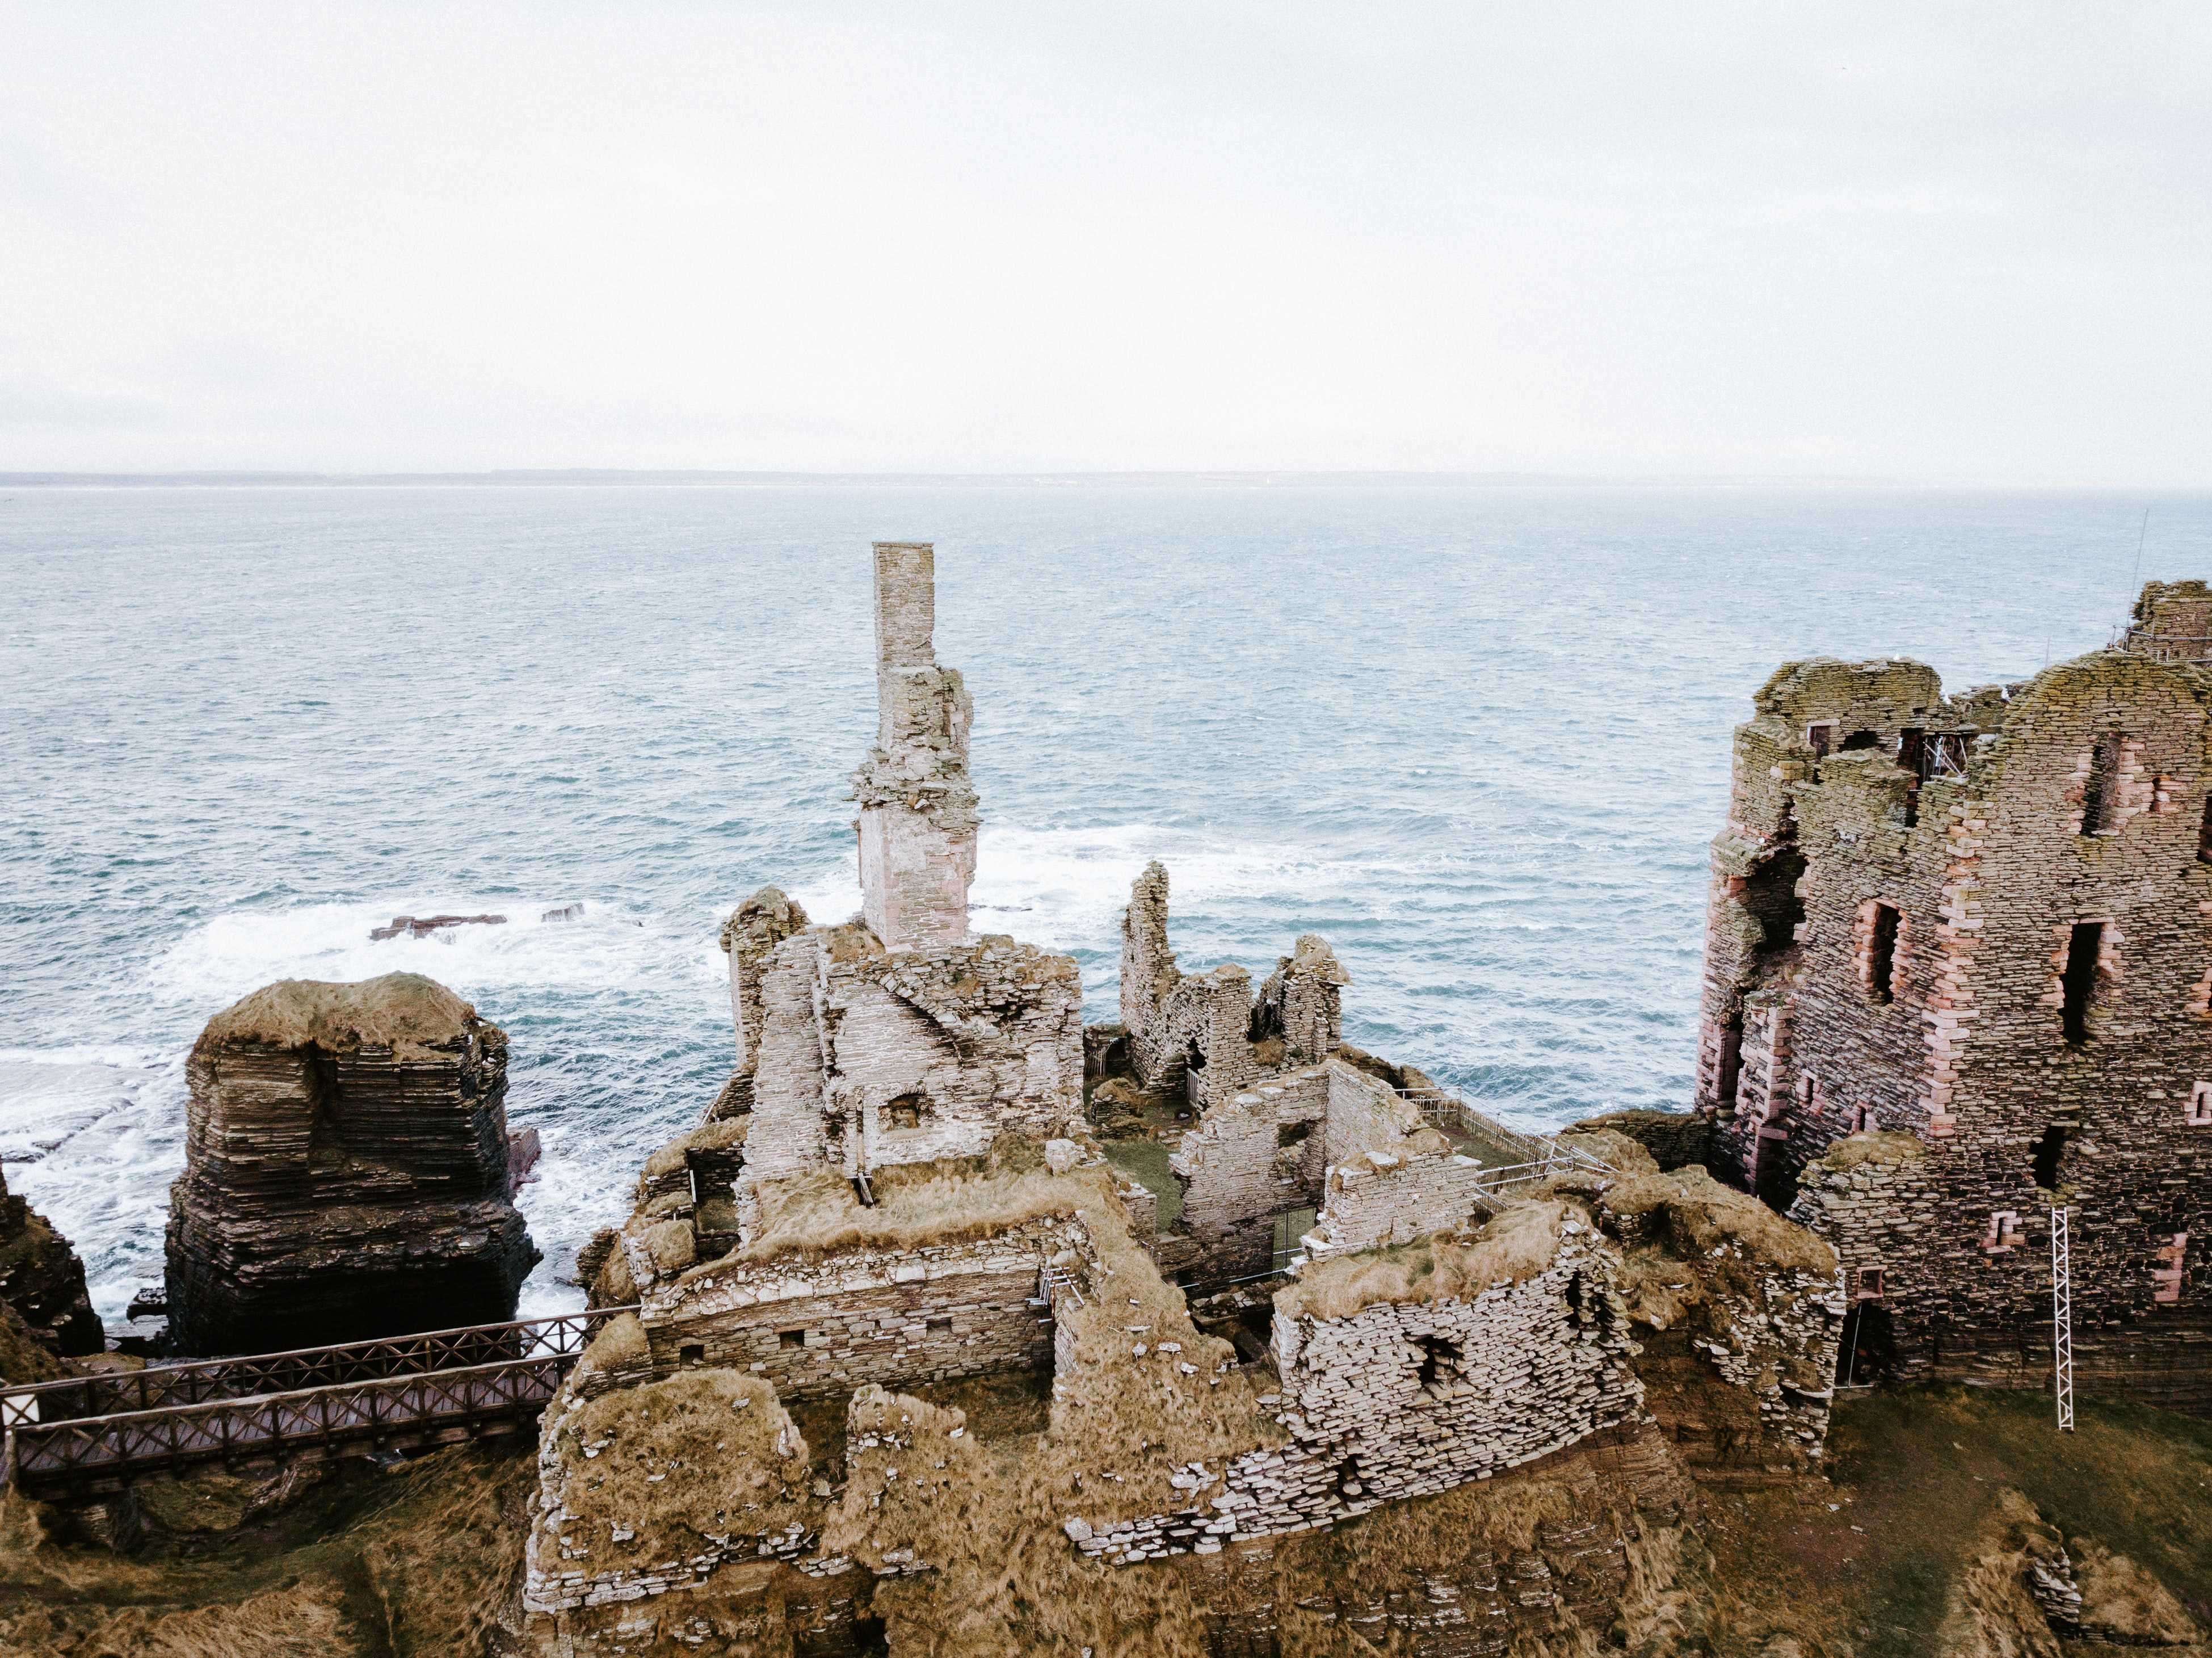 aerial photo of concrete abandoned buildings near sea at daytime